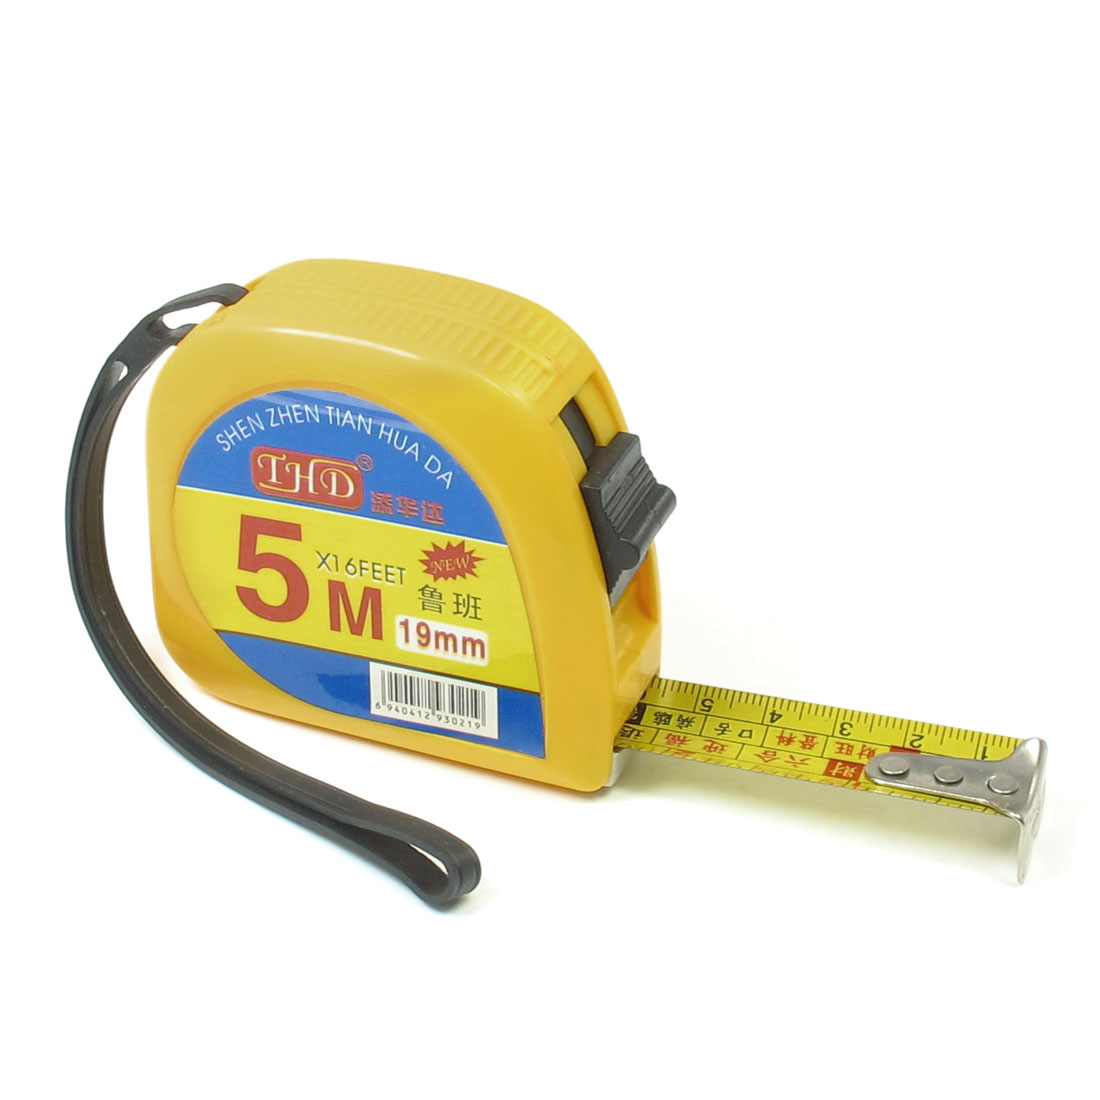 5M Yellow Plastic Housing Retractable Pocket Tape Measure